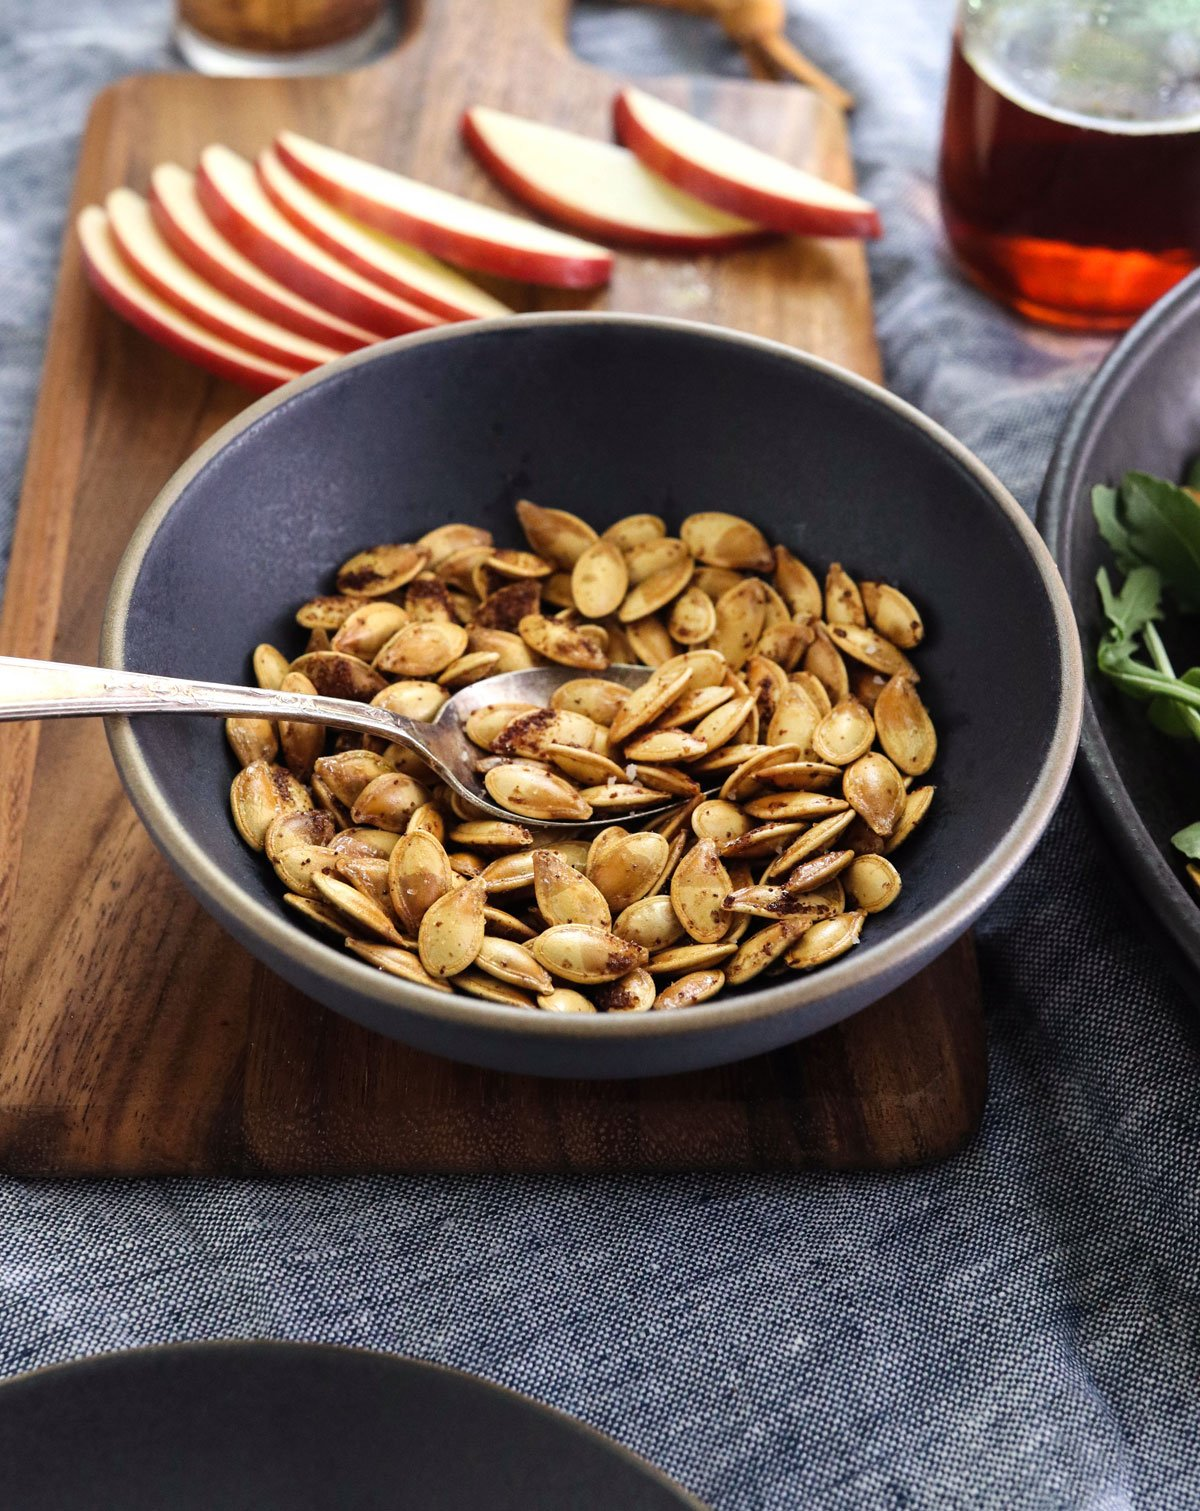 pumpkin seeds in dark bowl with salad ingredients